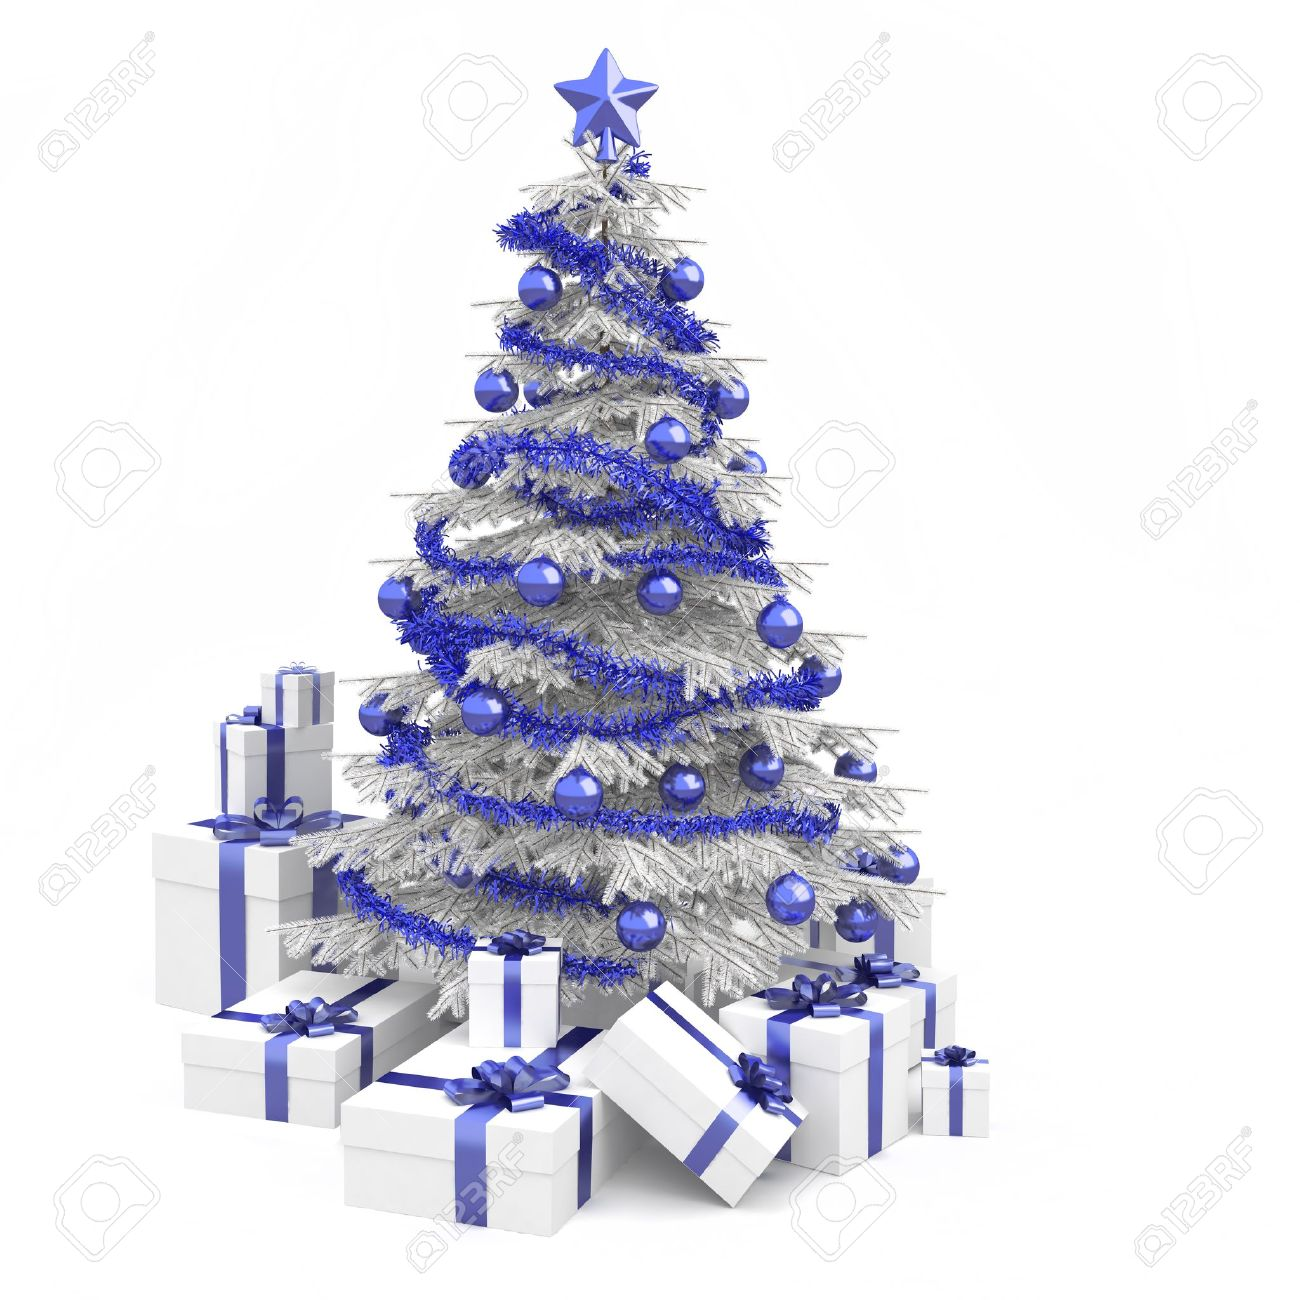 White christmas tree decorations blue - Fully Decorated Christmas Tree In Blue And White Colors With Many Presents And Isolated On White